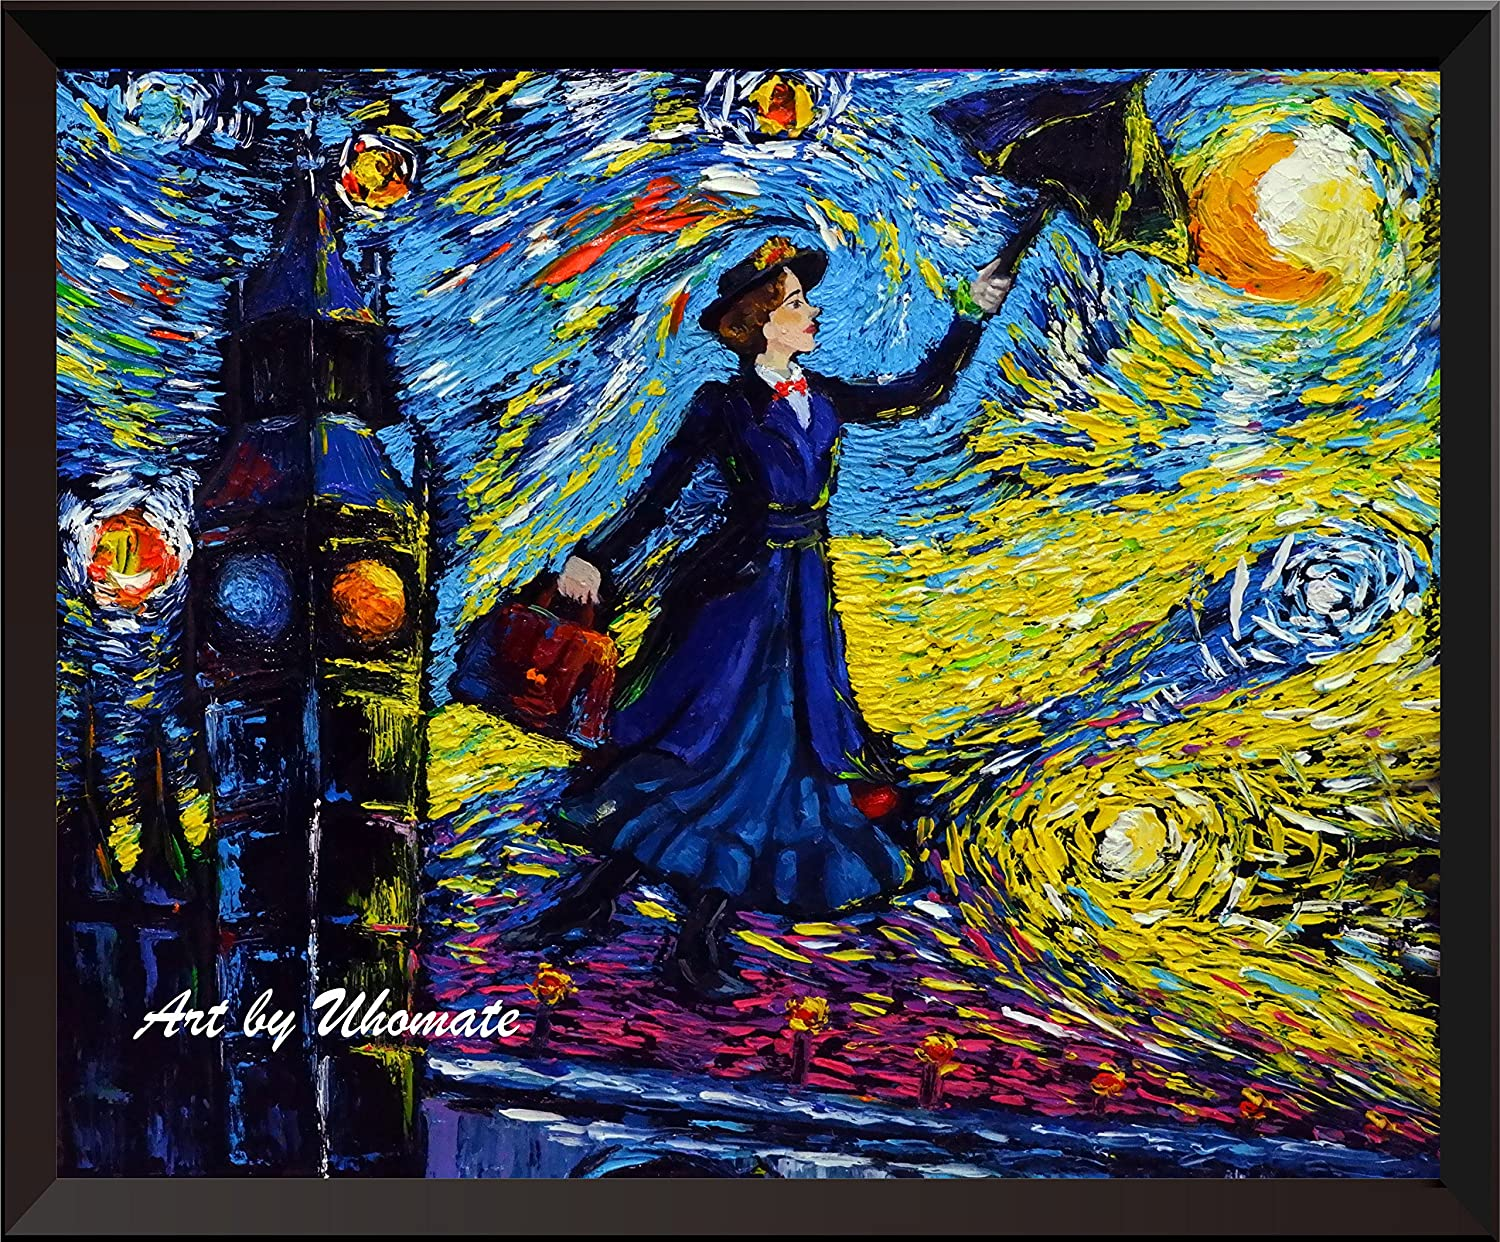 Uhomate Mary Poppins Vincent Van Gogh Starry Night Posters Home Canvas Wall Art Nursery Decor Living Room Wall Decor A066 (8X10)